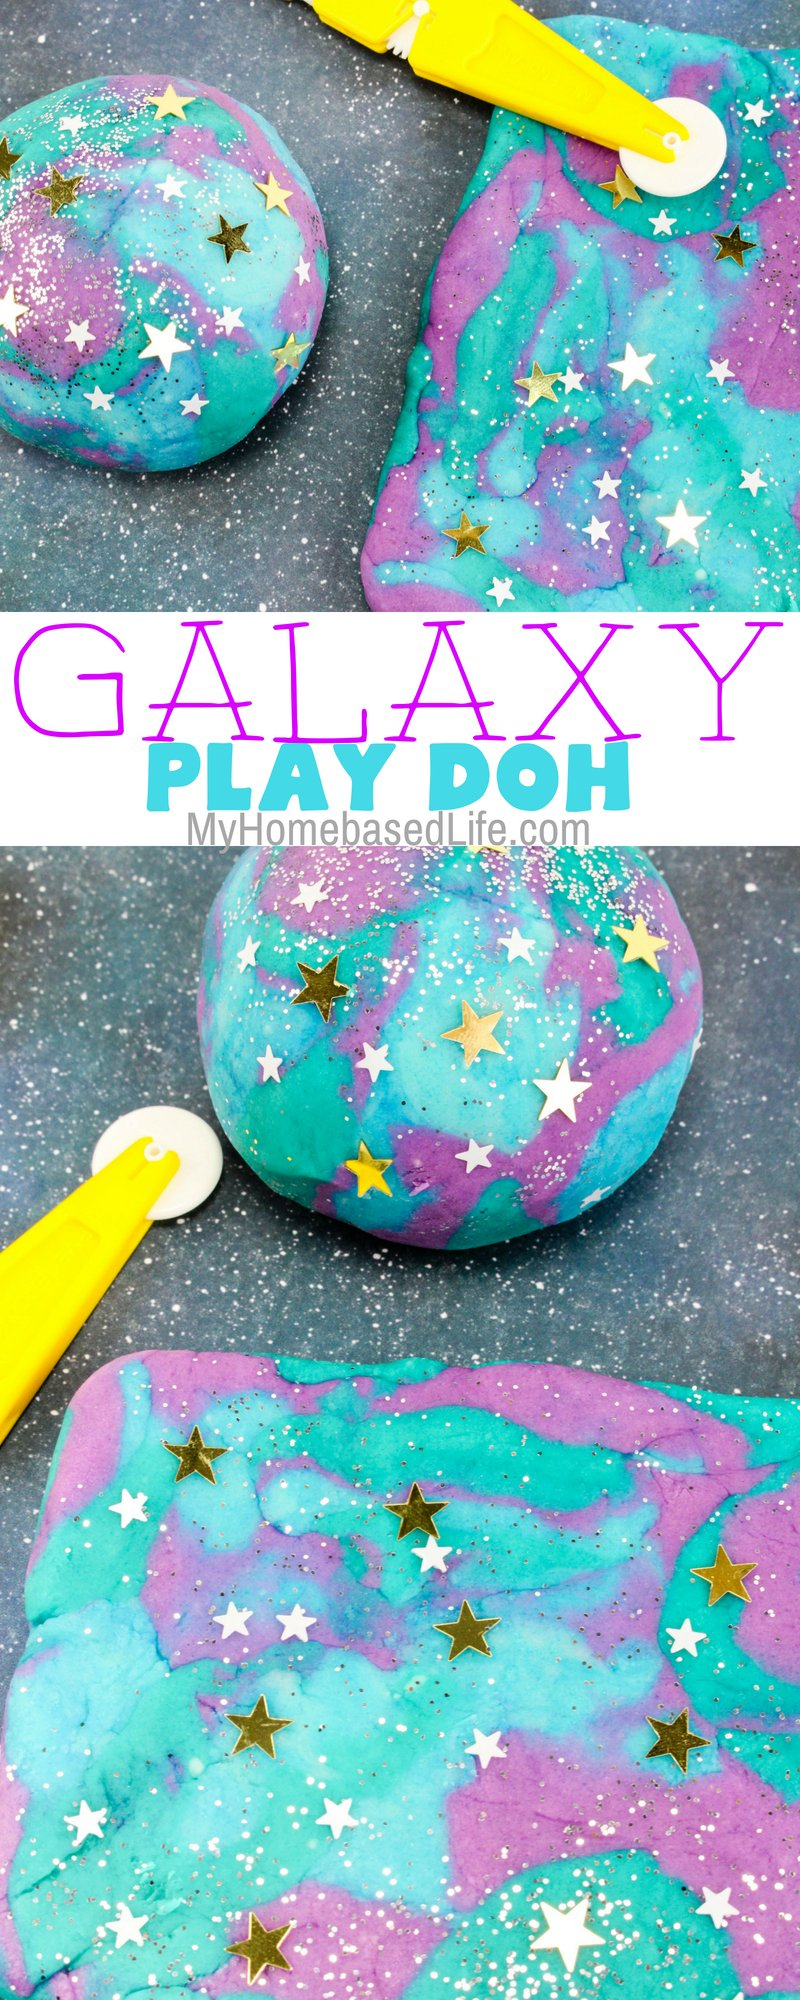 Plan a space night with the help of this Galaxy Play Doh recipe. Ask your kids how many stars and planets they see in theirs. Hours of fun right here! #homeschoolactivity #playdoh #kidsdiy #diy #galaxy #myhomebasedlife | Galaxy Themed | Homeschool DIY | DIY | DIY for Kids | Easy Kids Activity | Parenting | Learning through Play | For Kids |